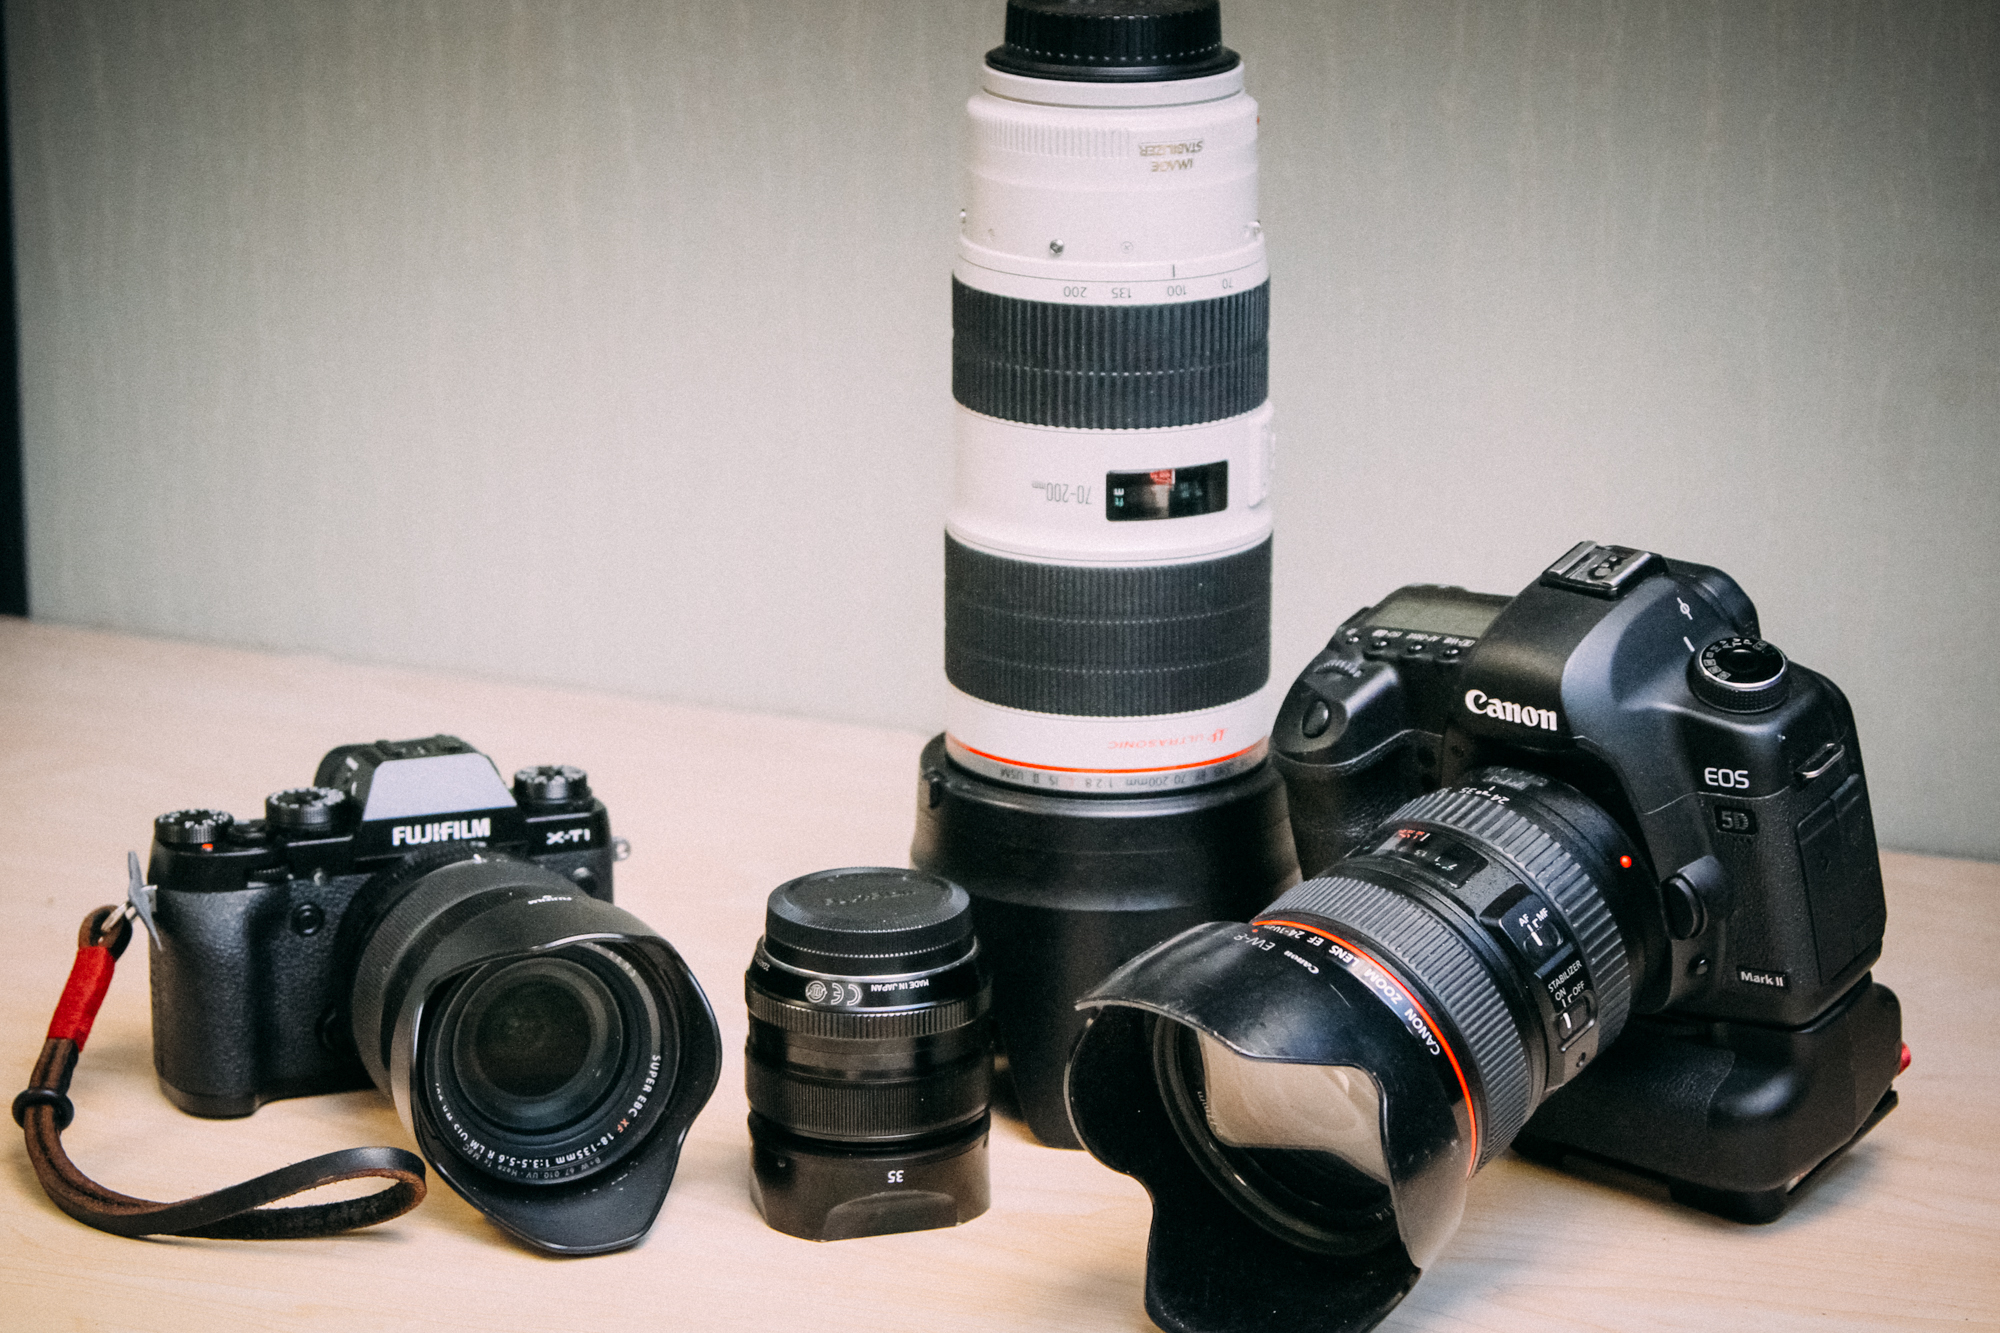 A quick size comparison between systems. On the right, the Canon 5DMkII with 24-105 f4L IS and 70-200 f2.8L IS compared to my new Fujifilm X-T1 with 18-135 as well as the 35mm f1.4 on the left.